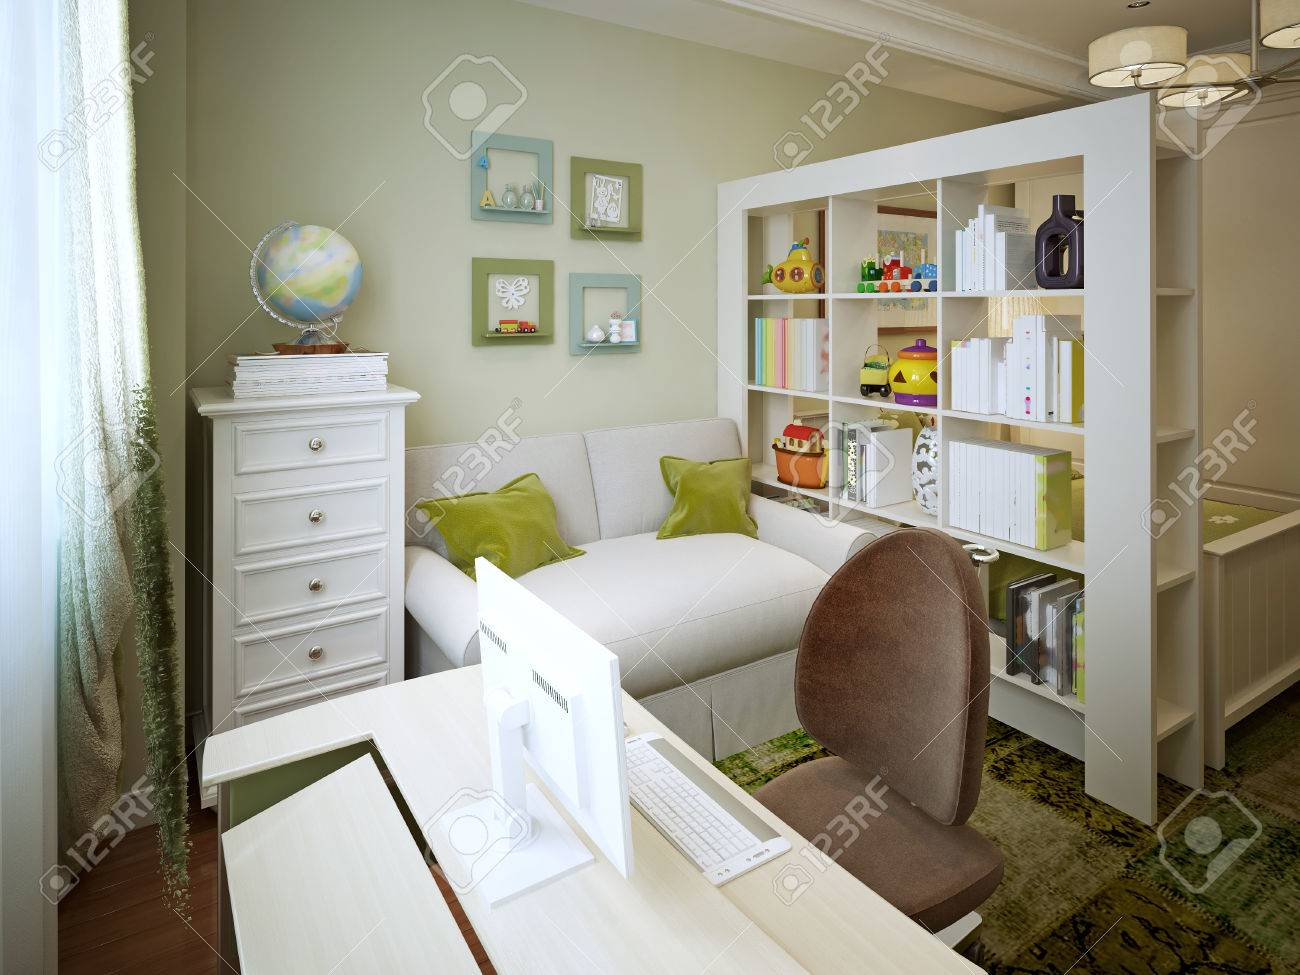 Children's Room For The Boy's Bed With Shelves And A Desk 3d